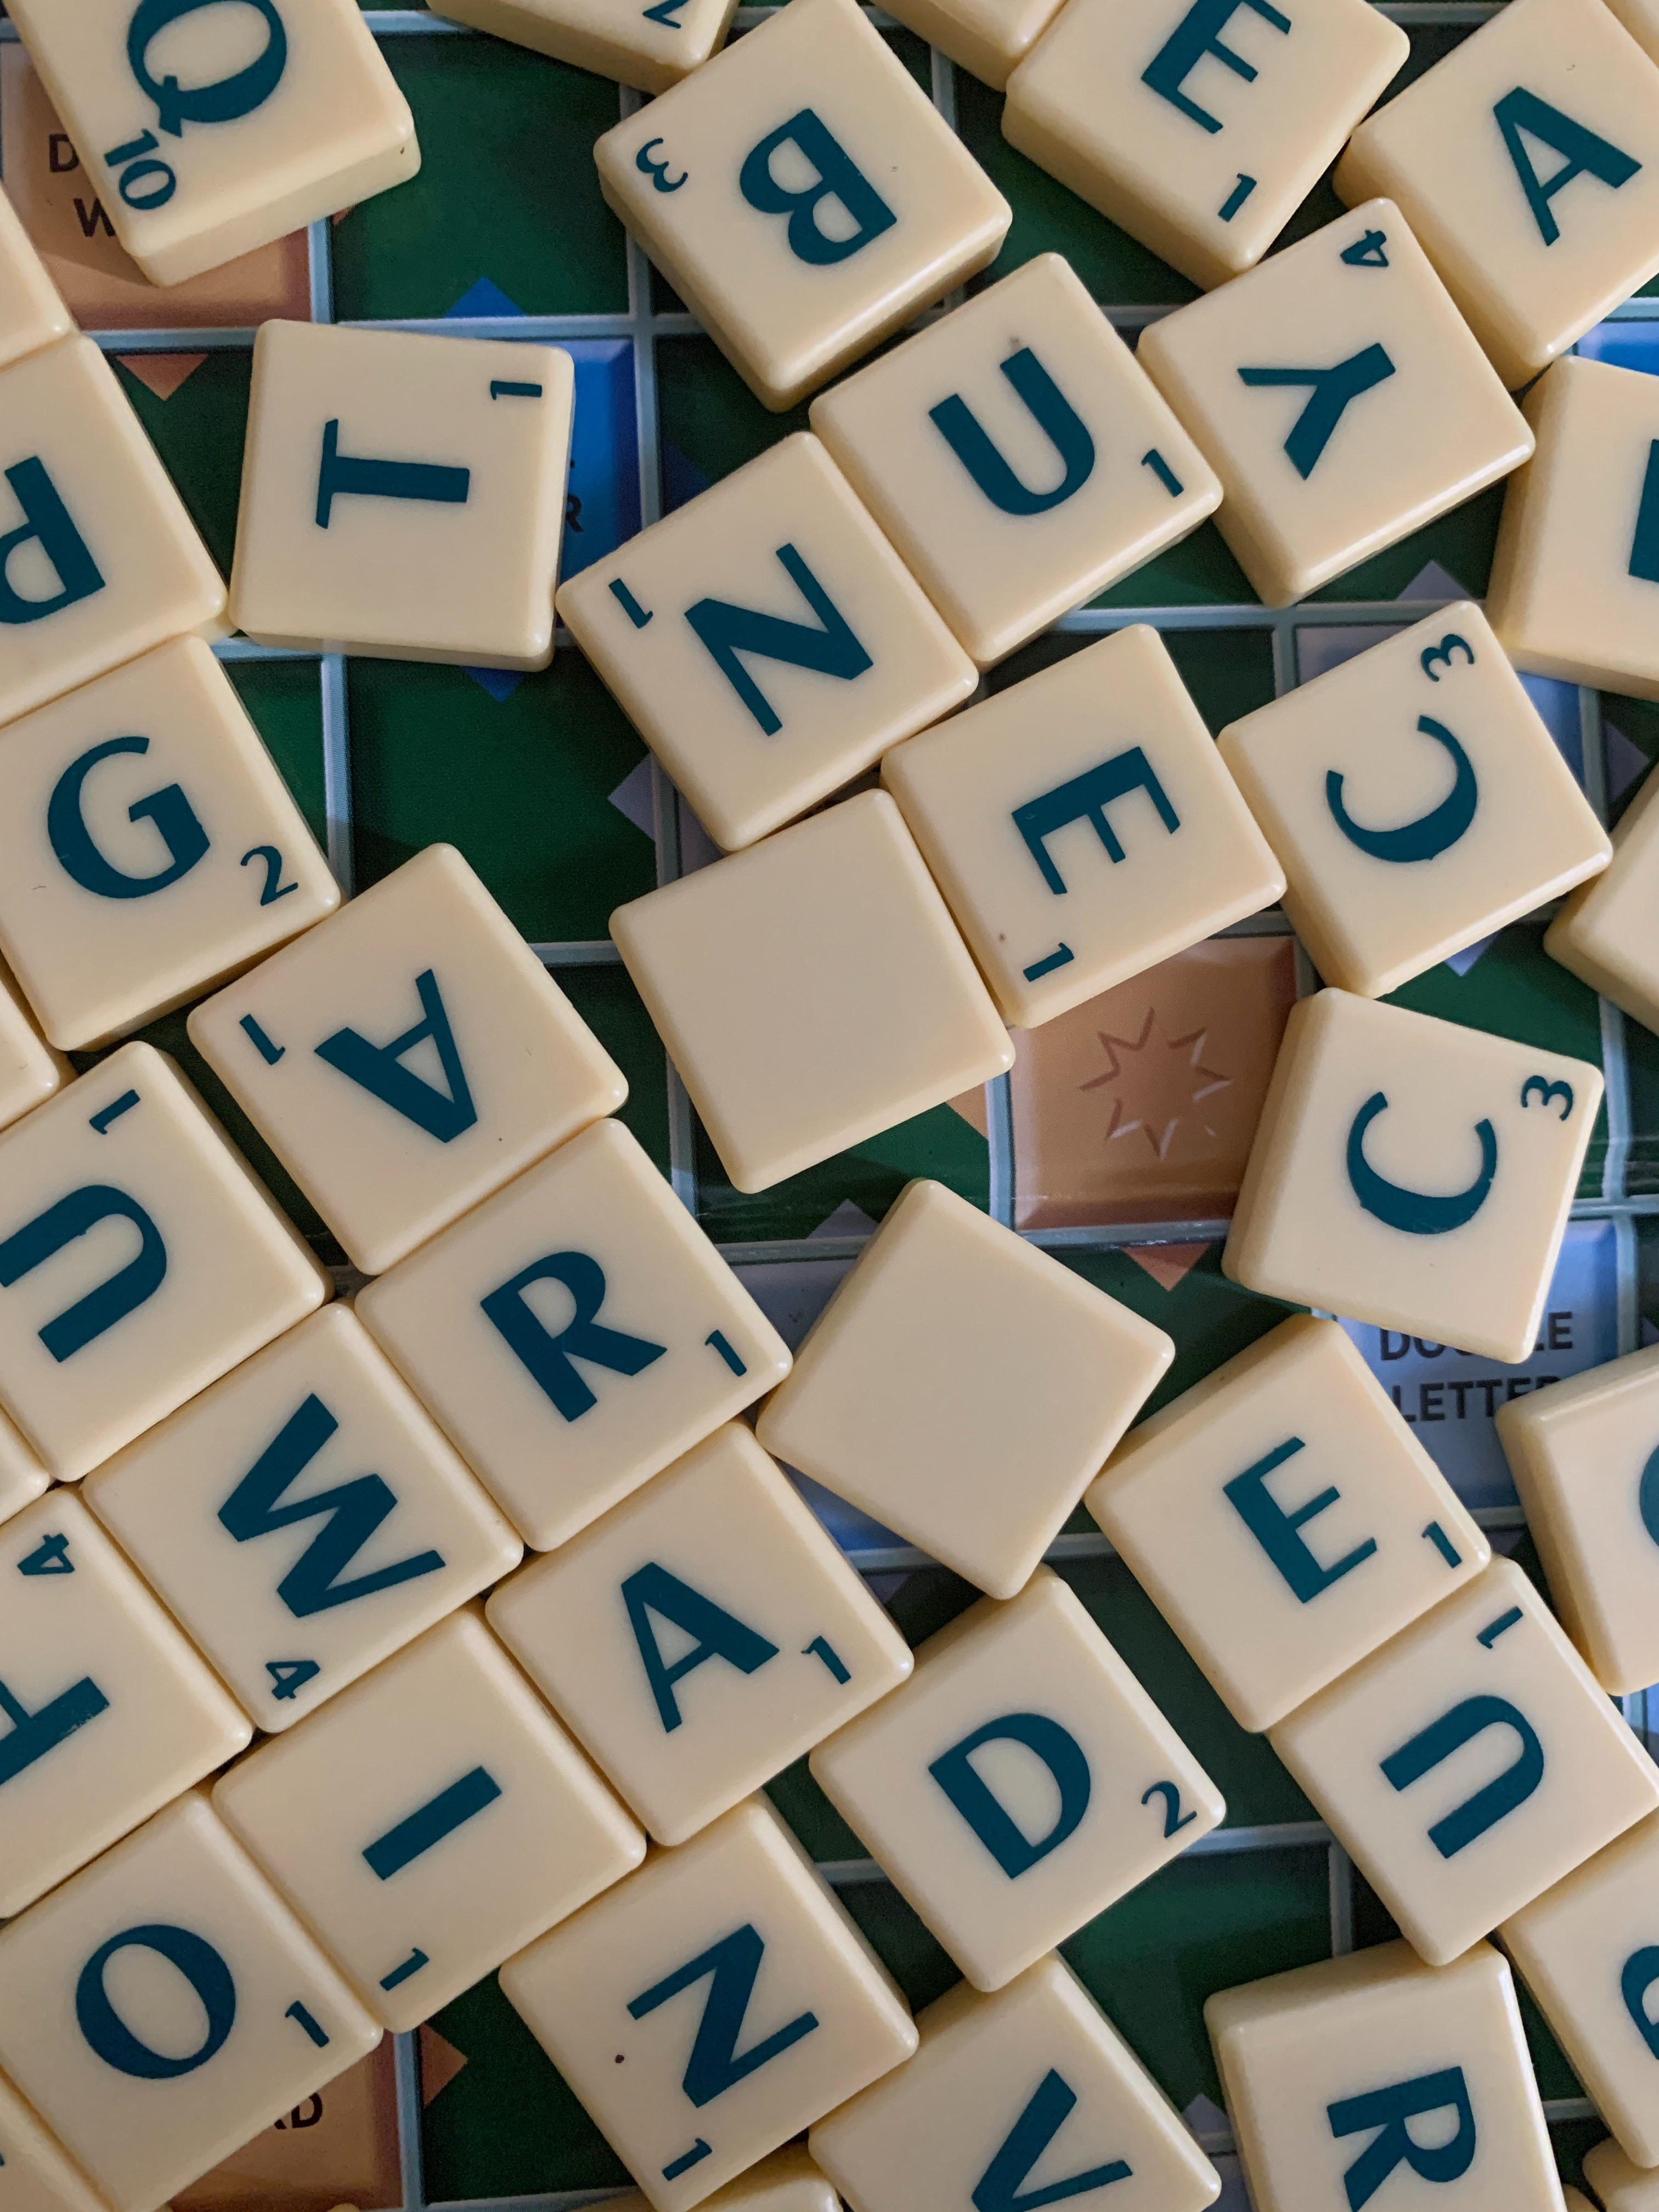 Pieces from a game of scrabble.